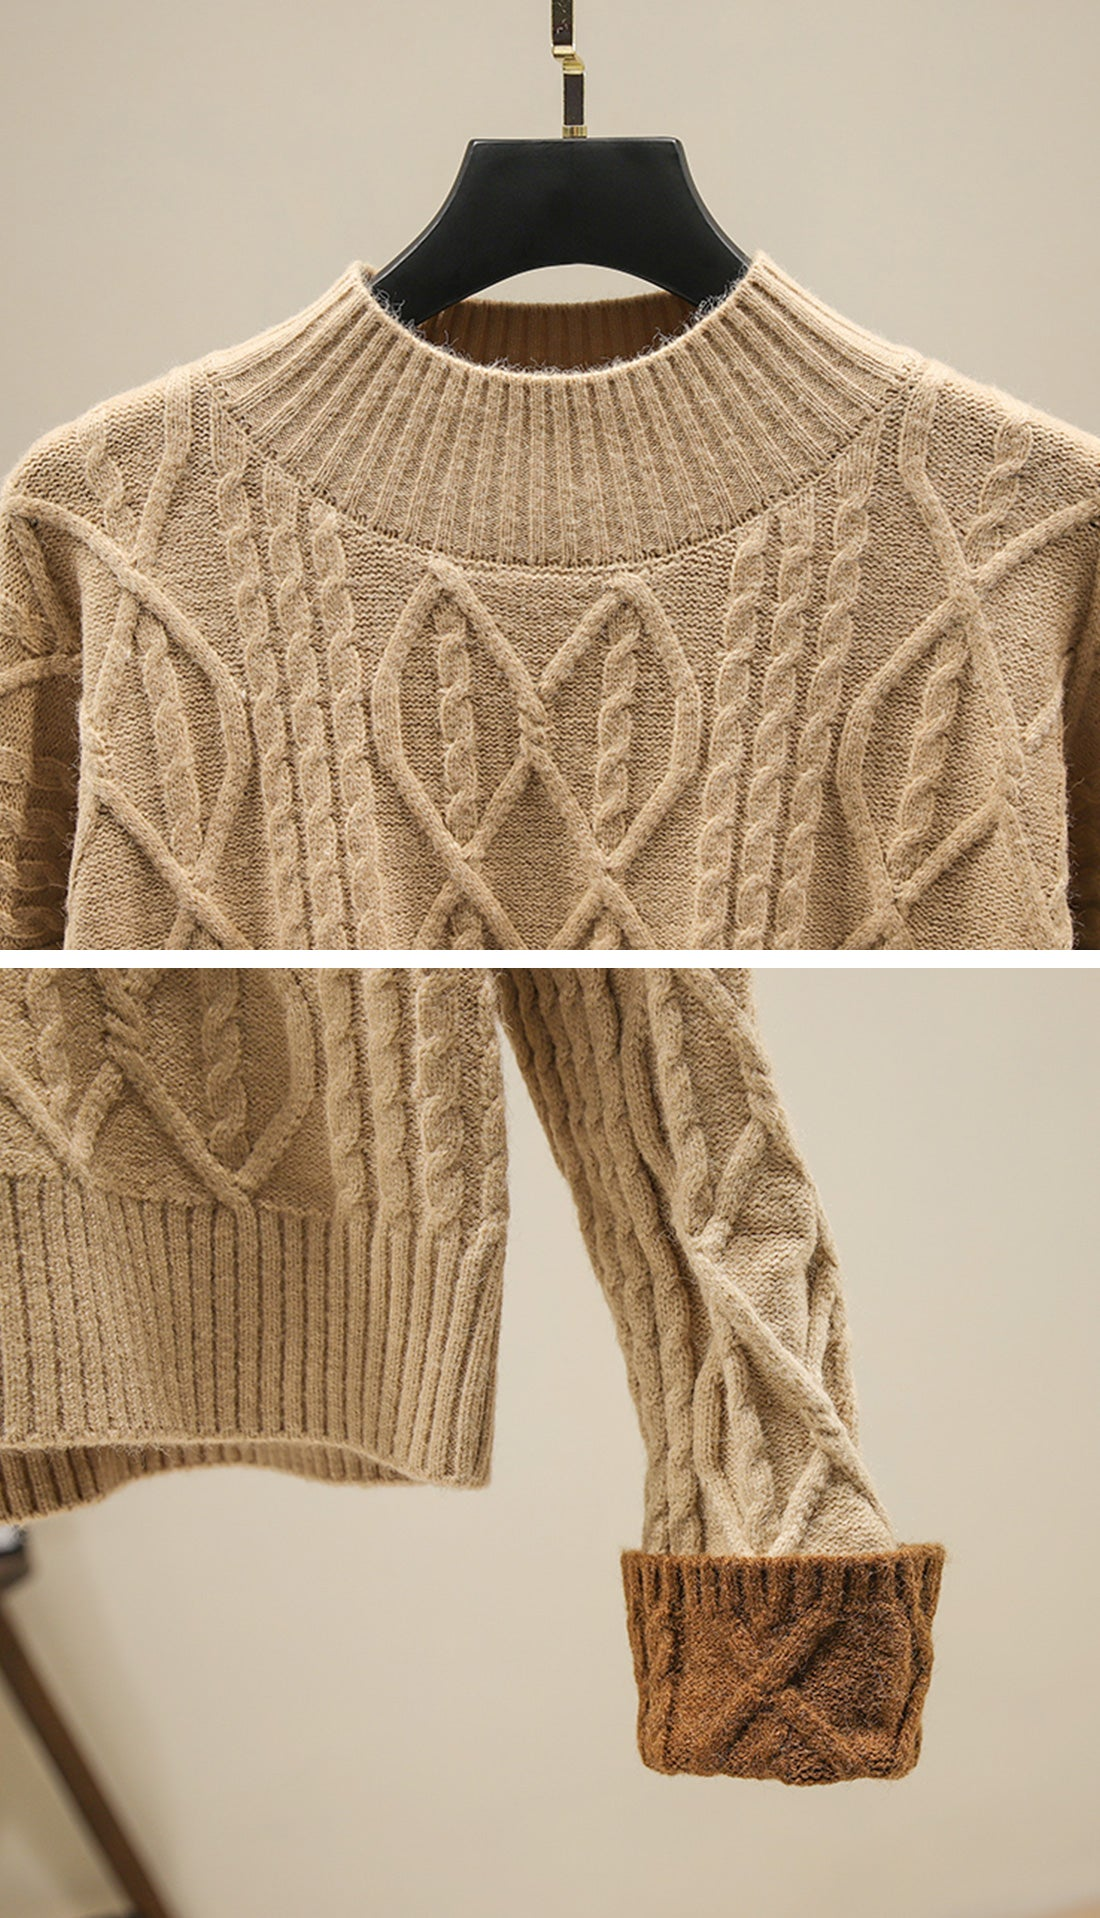 Drummer Knit Sweaters Details 4